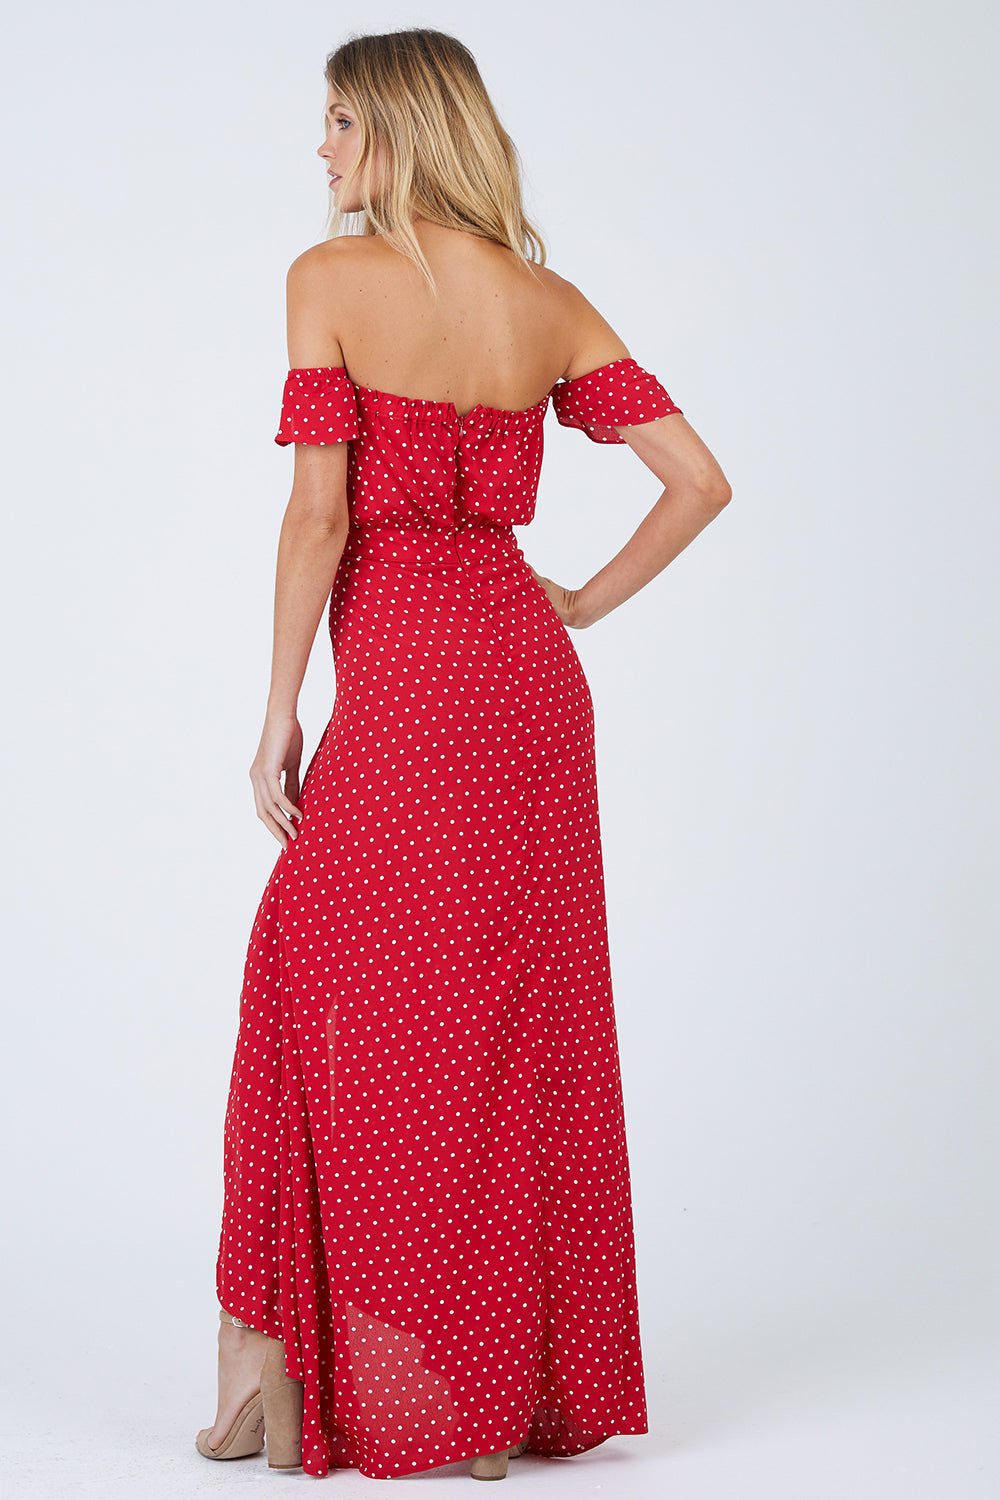 FLYNN SKYE Bella Off The Shoulder Maxi Dress - Cherry Dots Dress | Cherry Dots| Flynn Skye Bella Maxi Dress - Cherry Dots Ruffled off shoulder straps Dramatic wrap skirt High, ultra-sexy leg slit at the front Stretchy gathered elastic band at the back 100% Rayon Dry clean Made in Los Angeles Back View